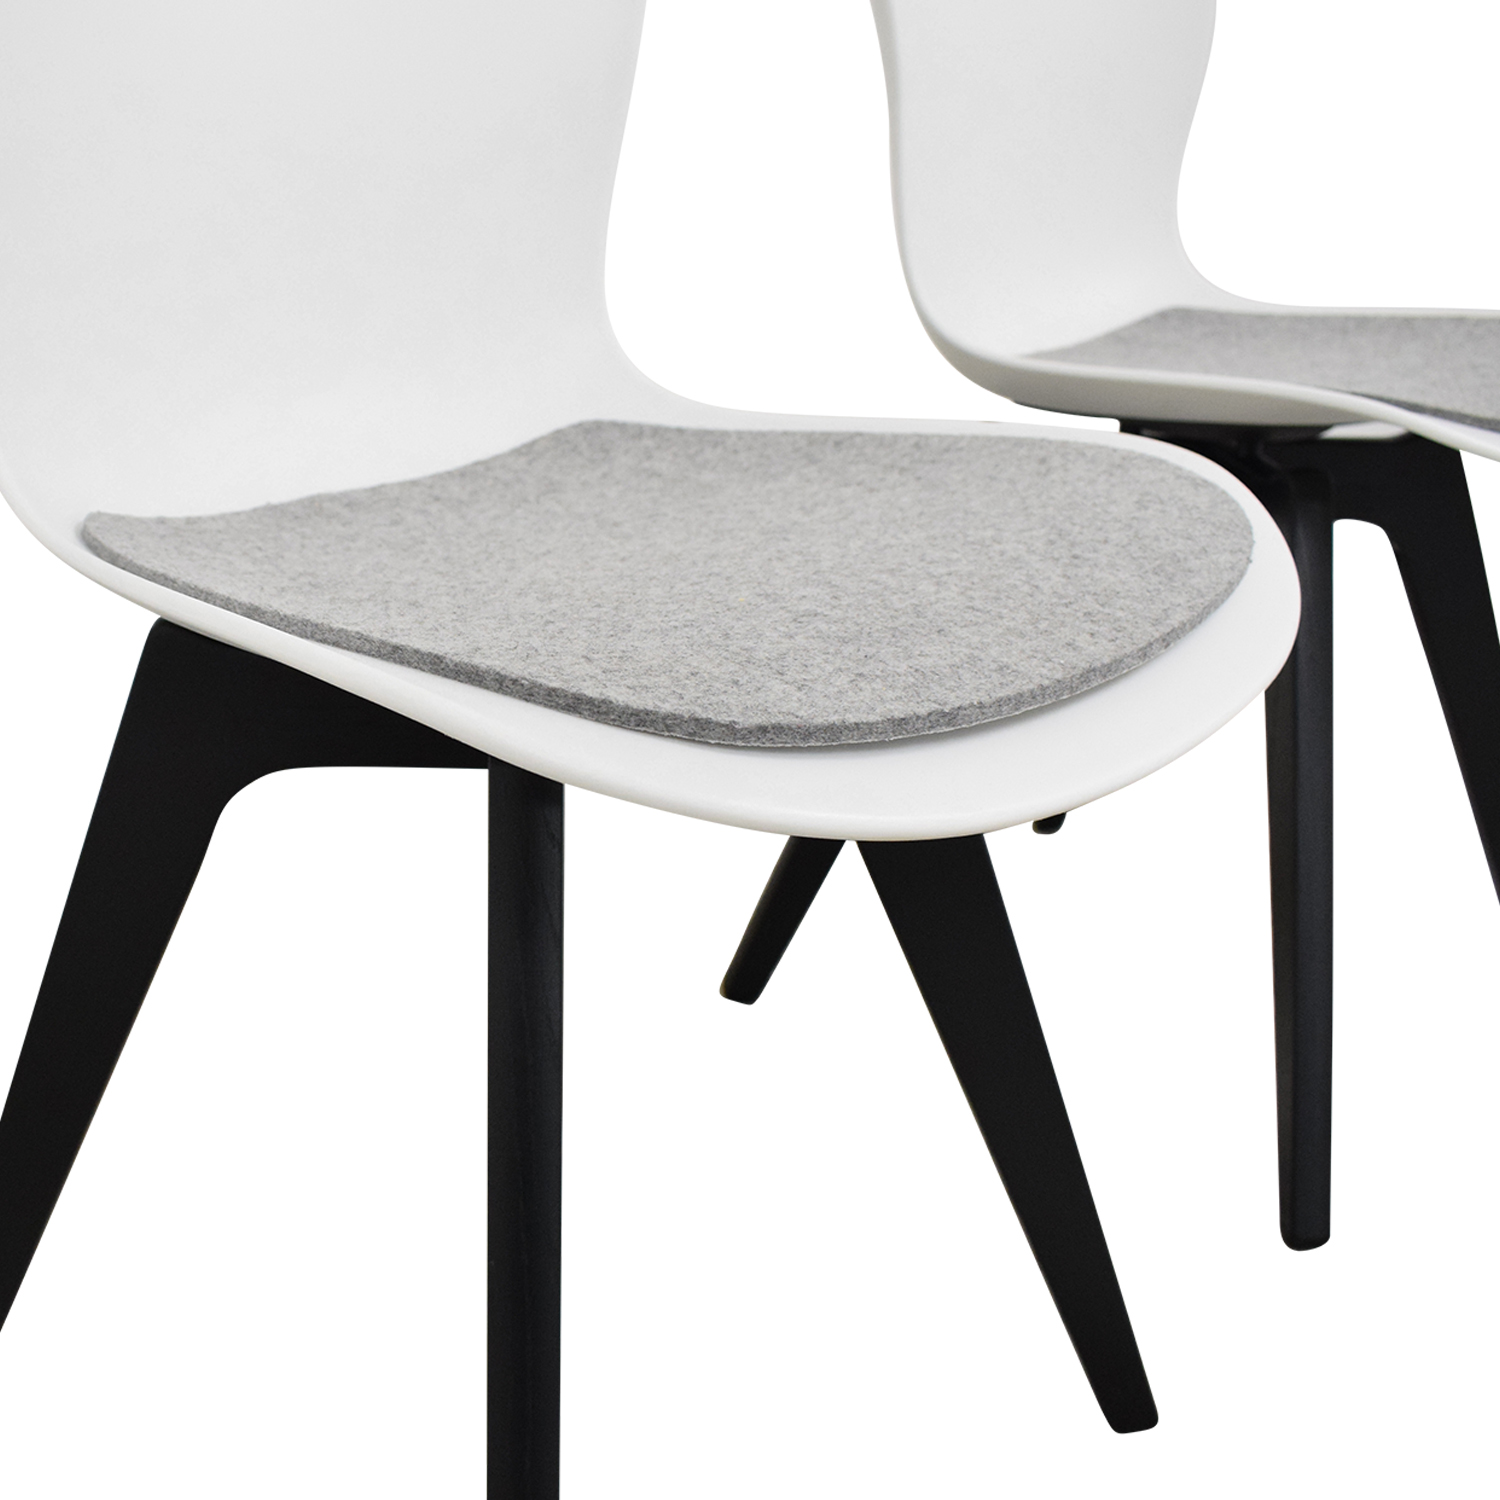 shop BoConcept Adelaide Chairs with Morgan Seat Cushions BoConcept Chairs